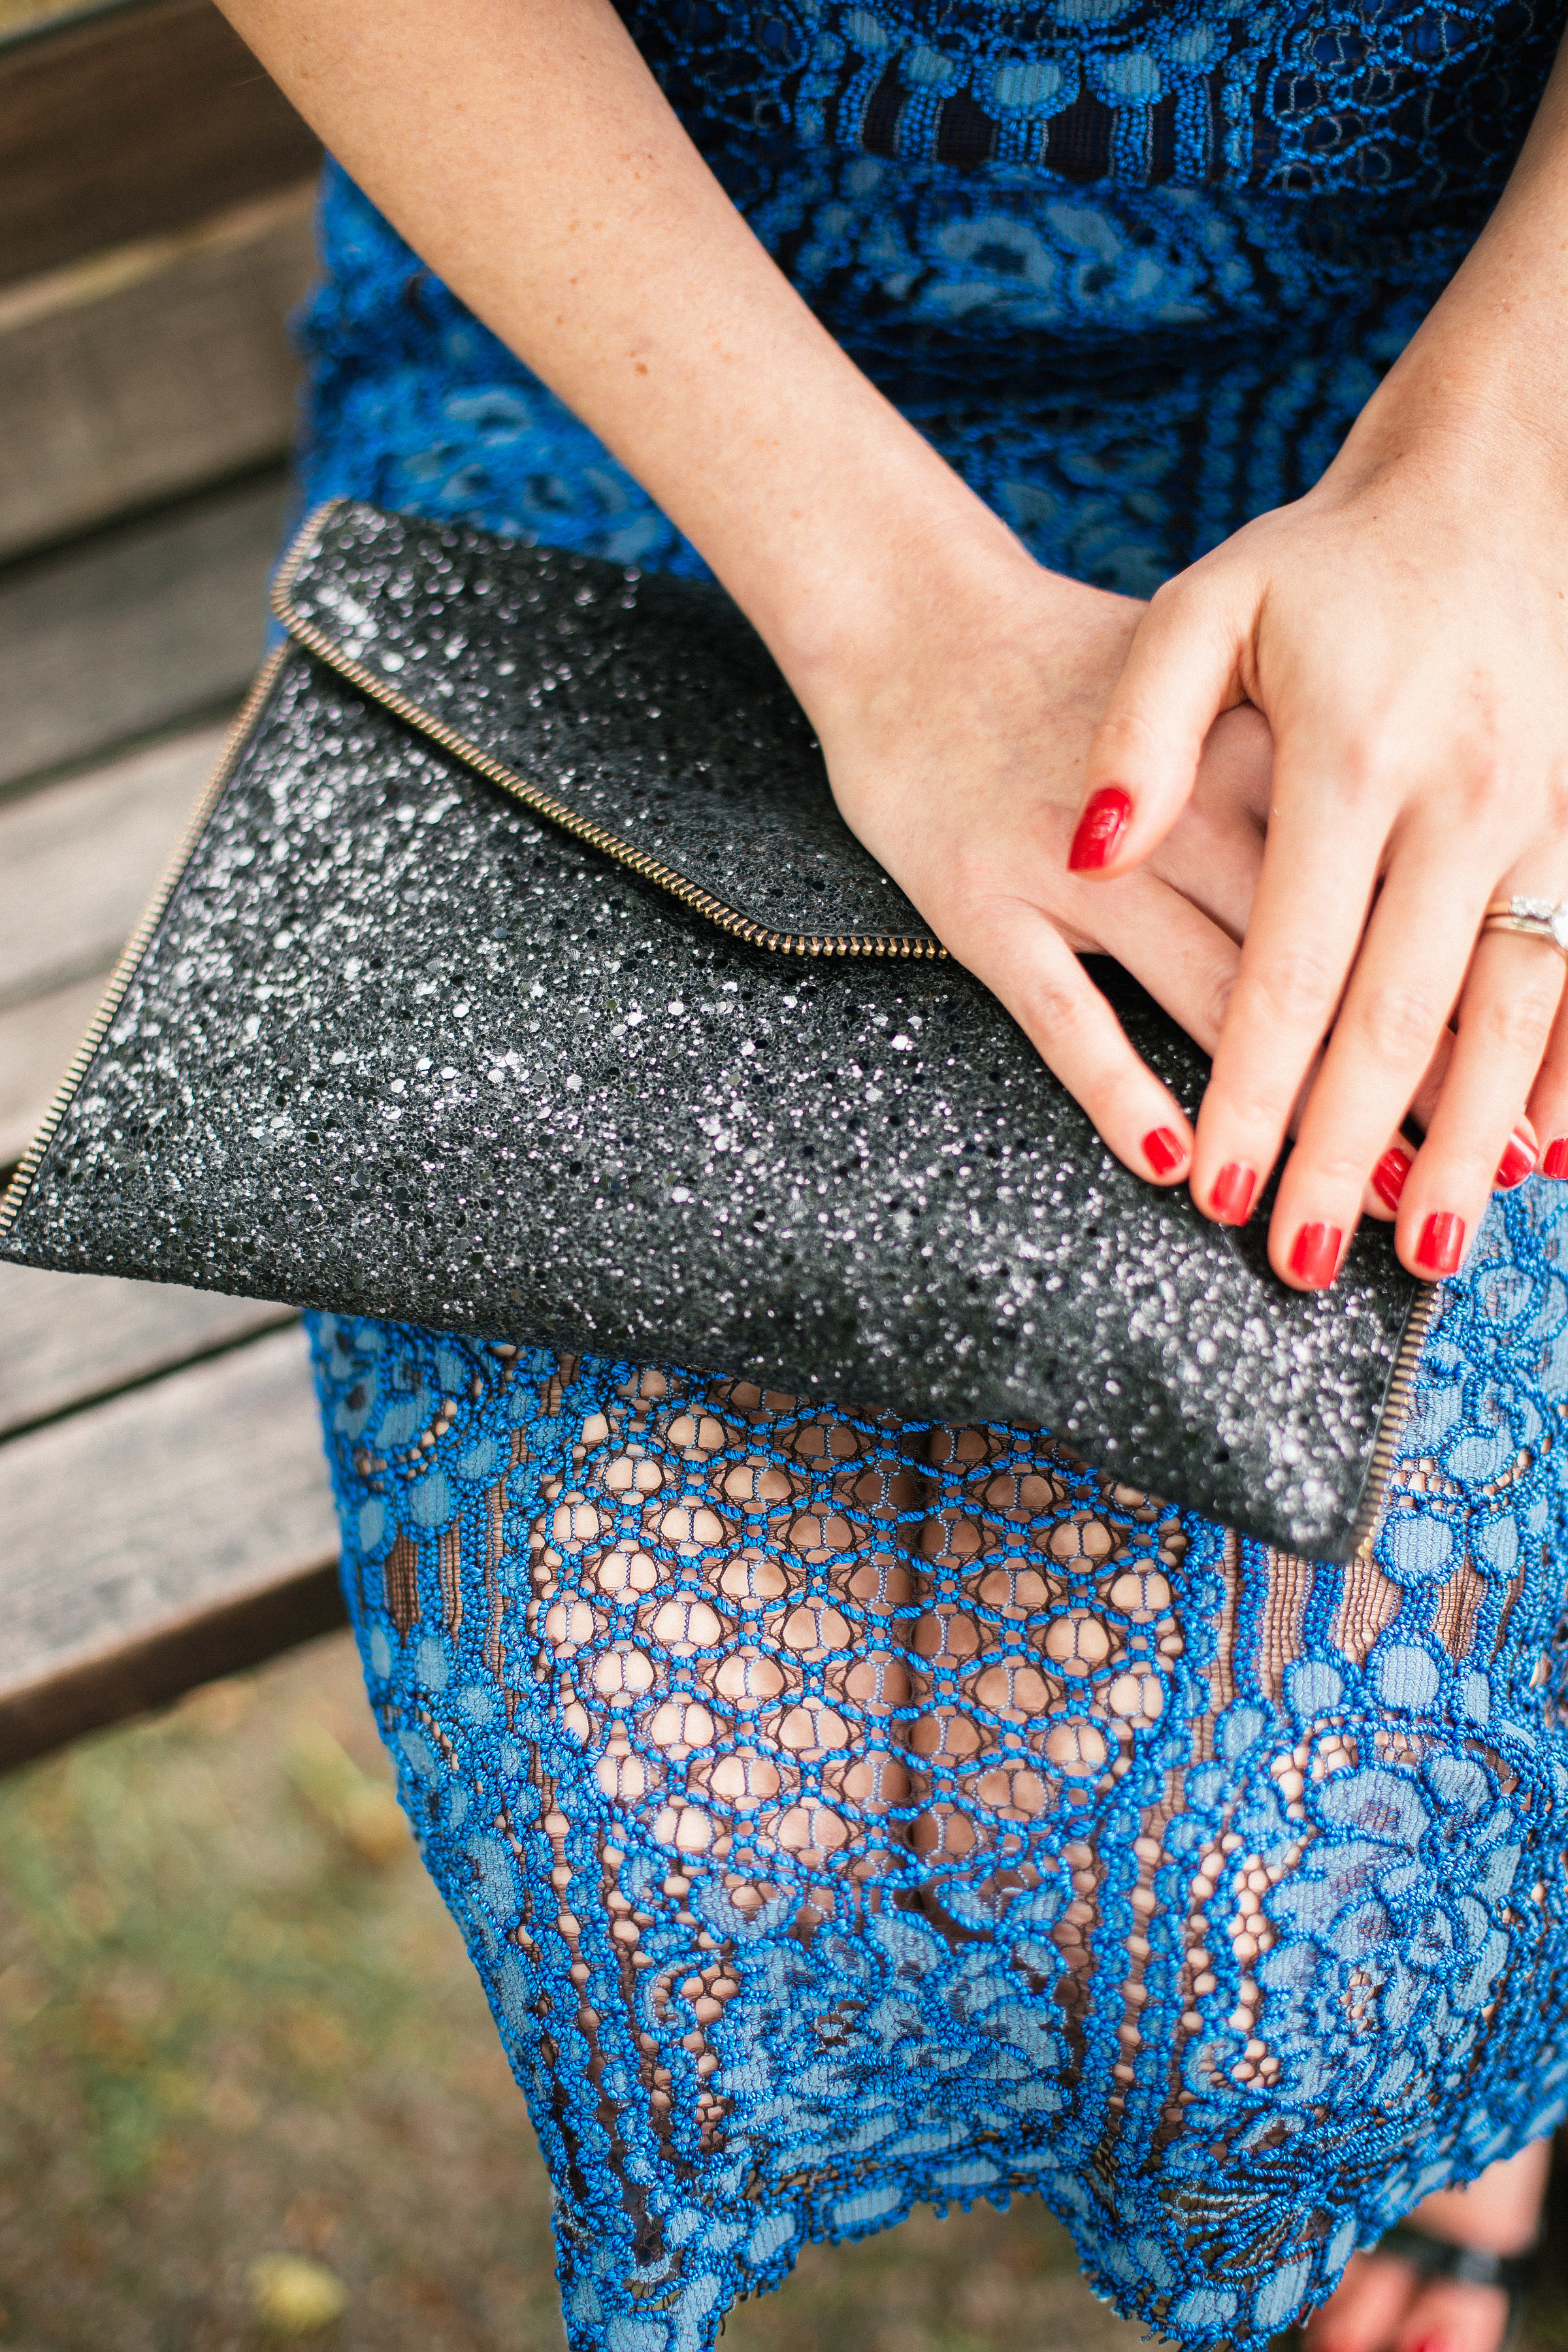 Lace dress and clutch details